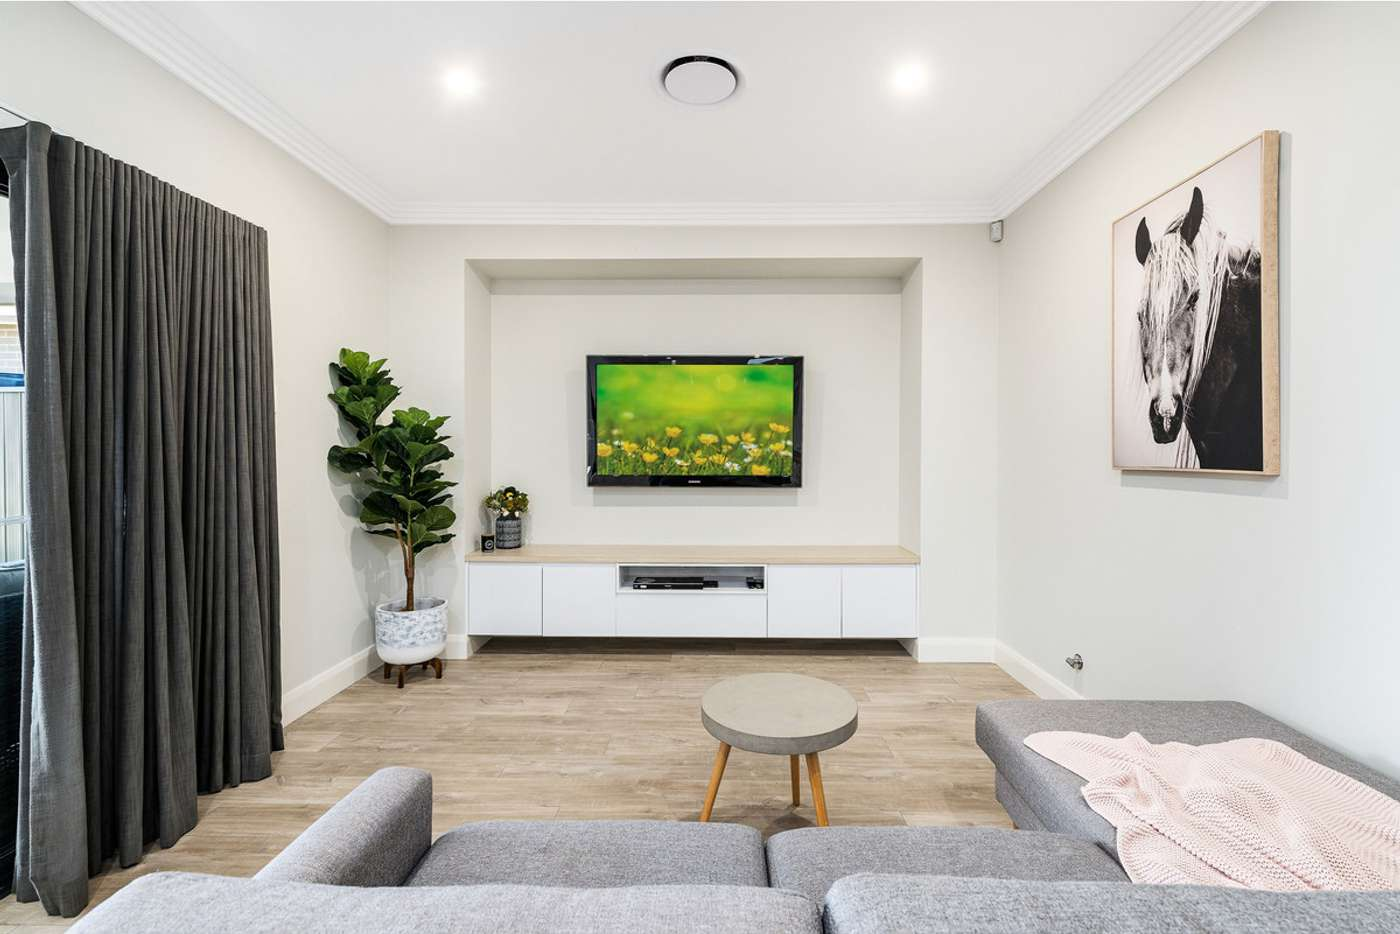 Fifth view of Homely house listing, 21 Melanite Street, Leppington NSW 2179